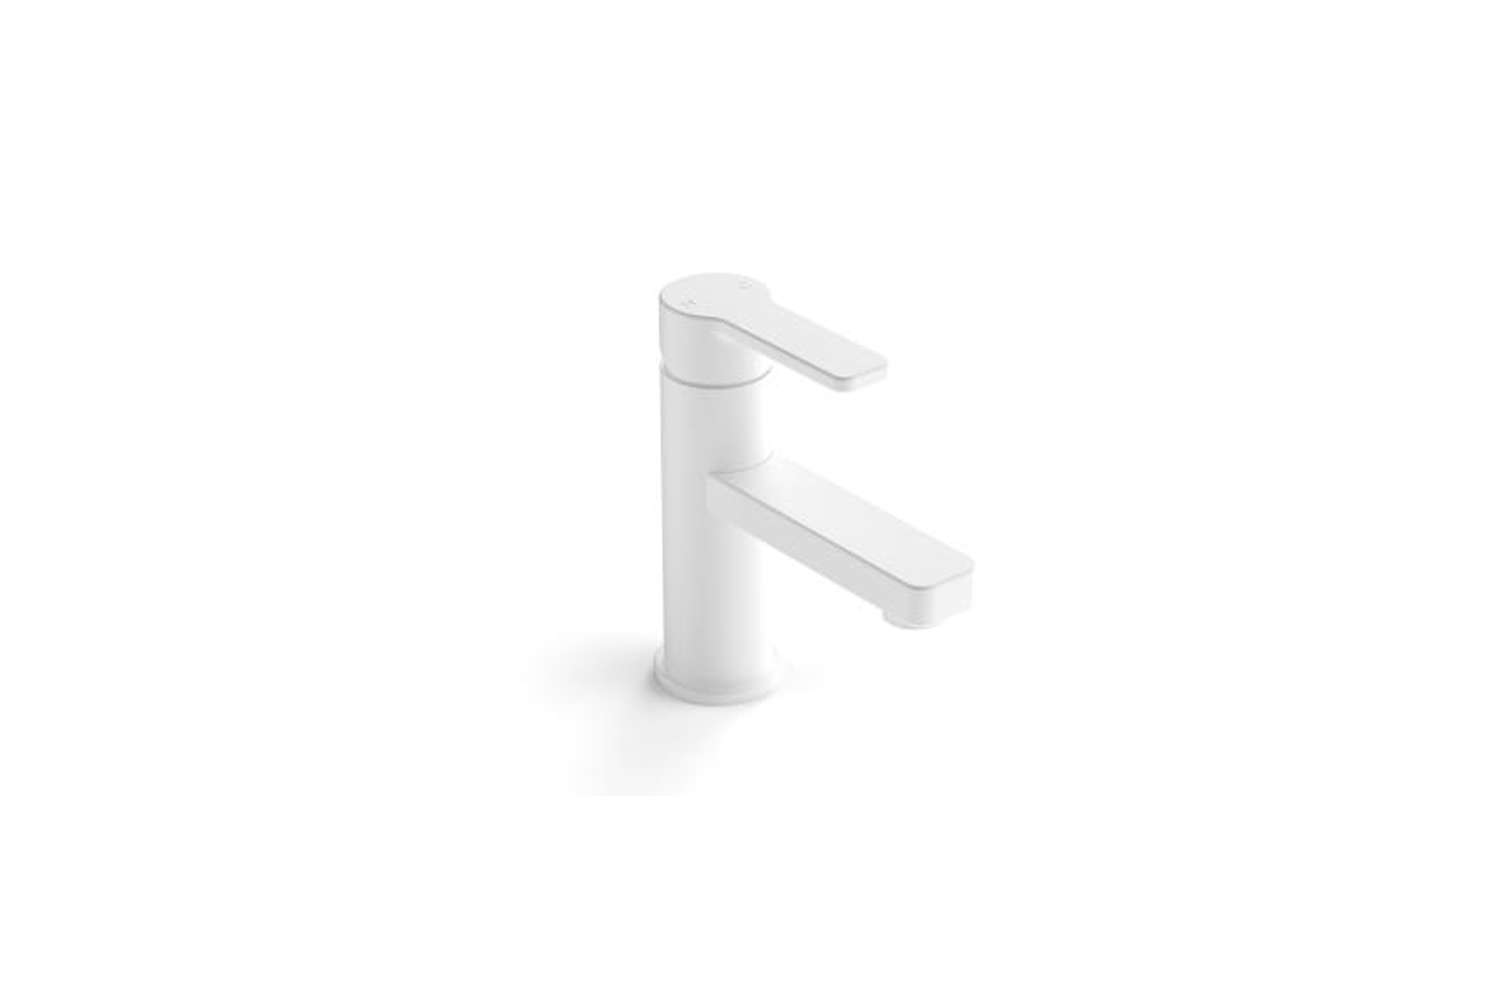 From Australian company Zeos, the Zeos 350 Basin Mixer in white-finished cast brass is available through Faucet Strommen in Australia.